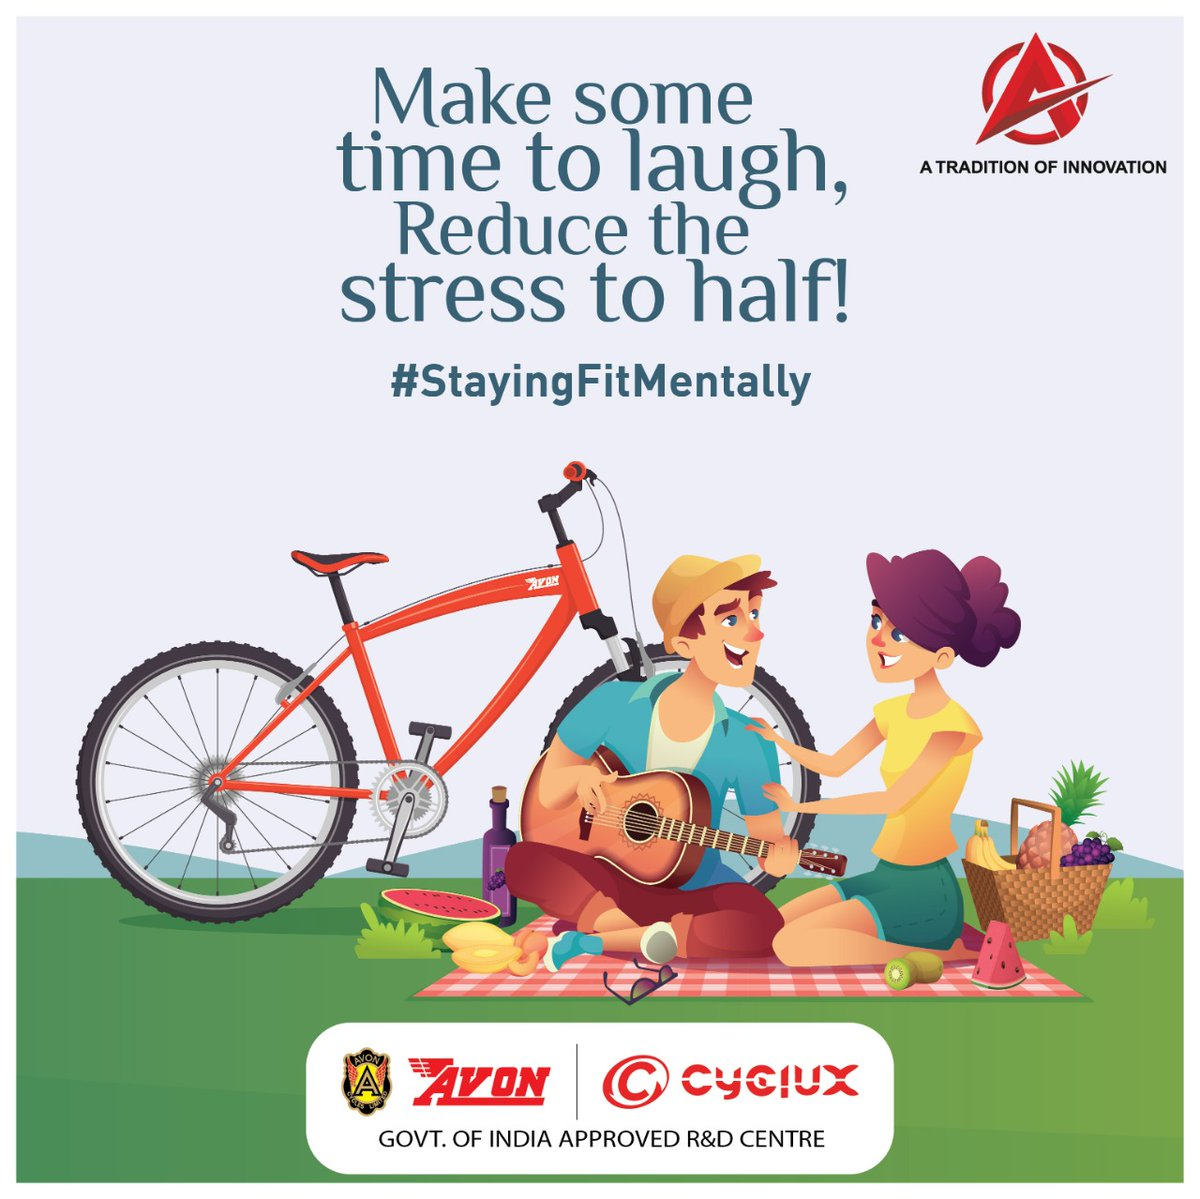 Laughing has proven to reduce the stress to a great extent and can divert your mind from negative thoughts and thus, help you in bettering your #mentalhealth. #Avoncycles #Adventures #cyclux #RideTheFuture #VocalForLocal #cyclemarket #Health #Mentalhealth  #StayingFitMentally https://t.co/k1sqRhYiwm